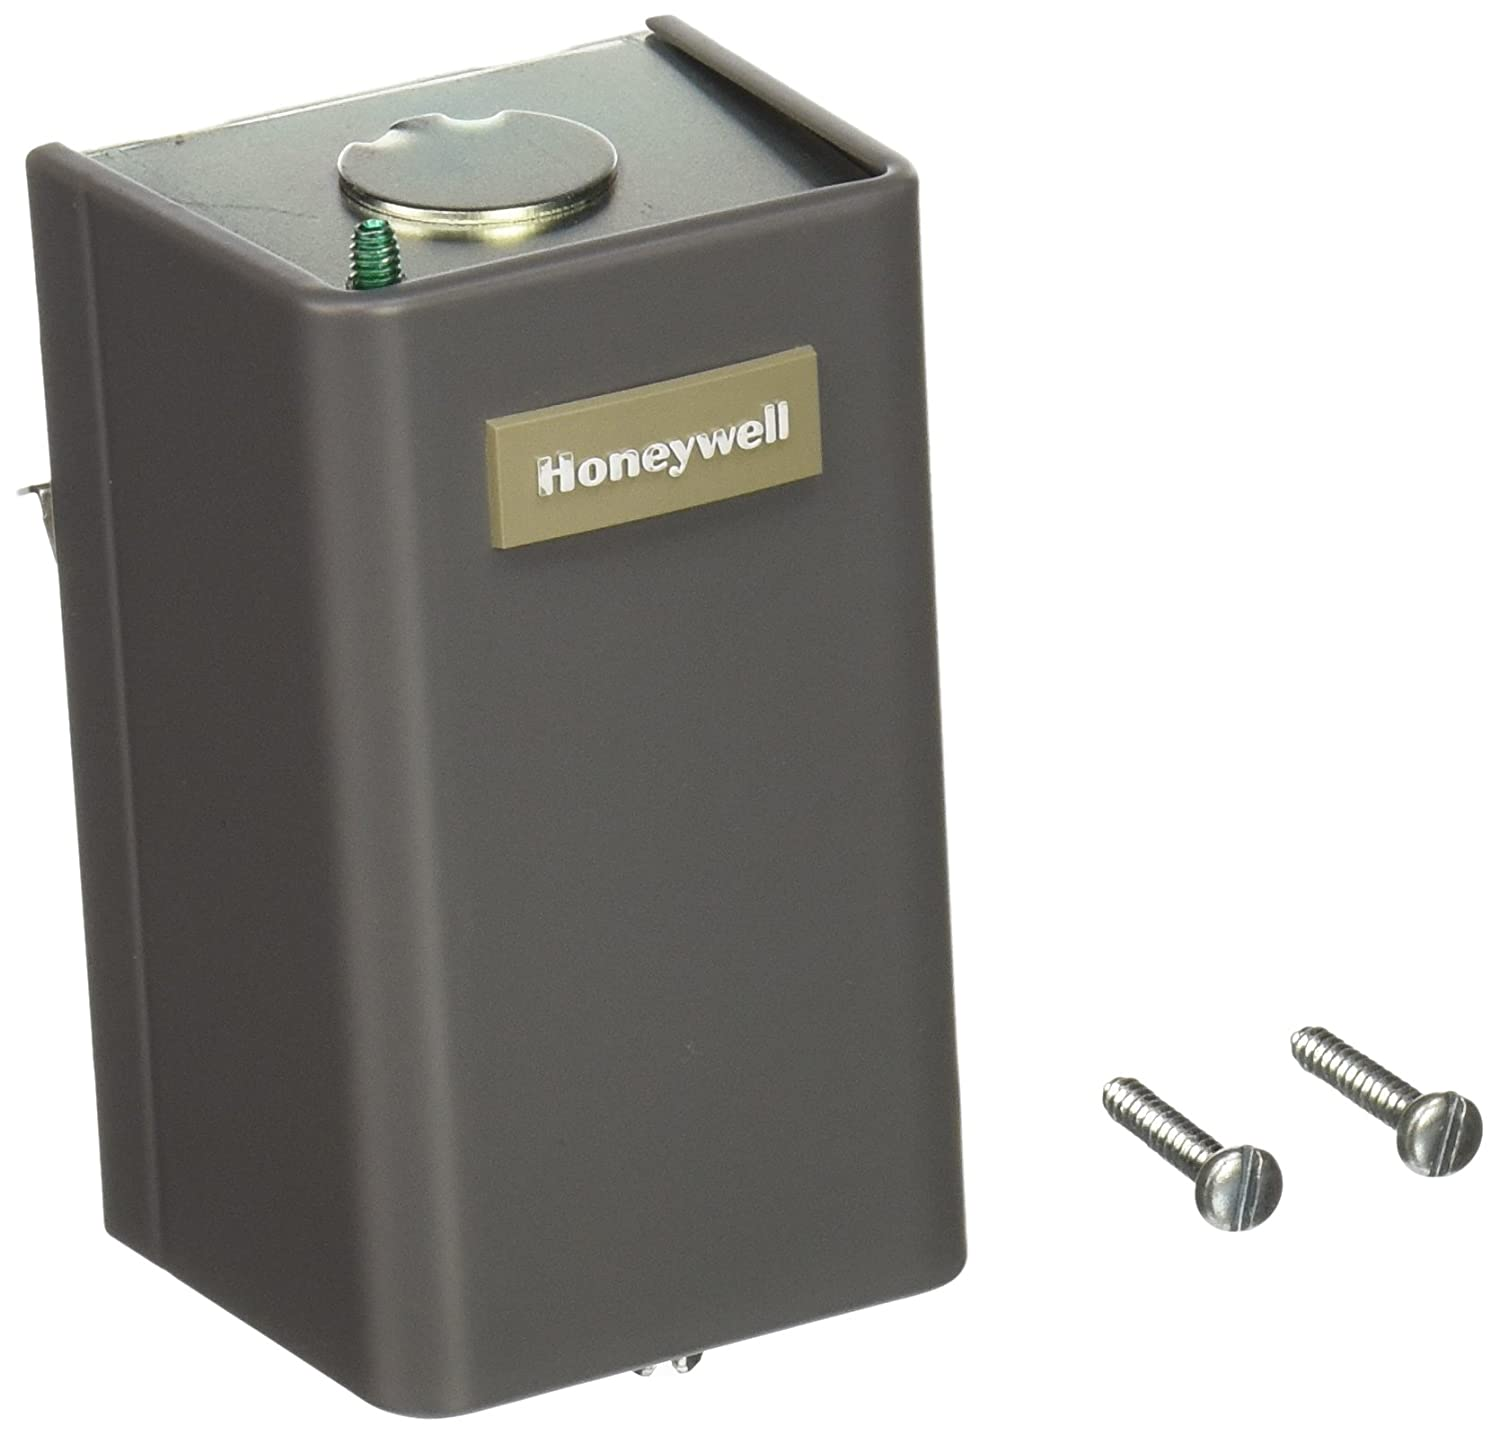 Honeywell he260 parts | humidifiers.